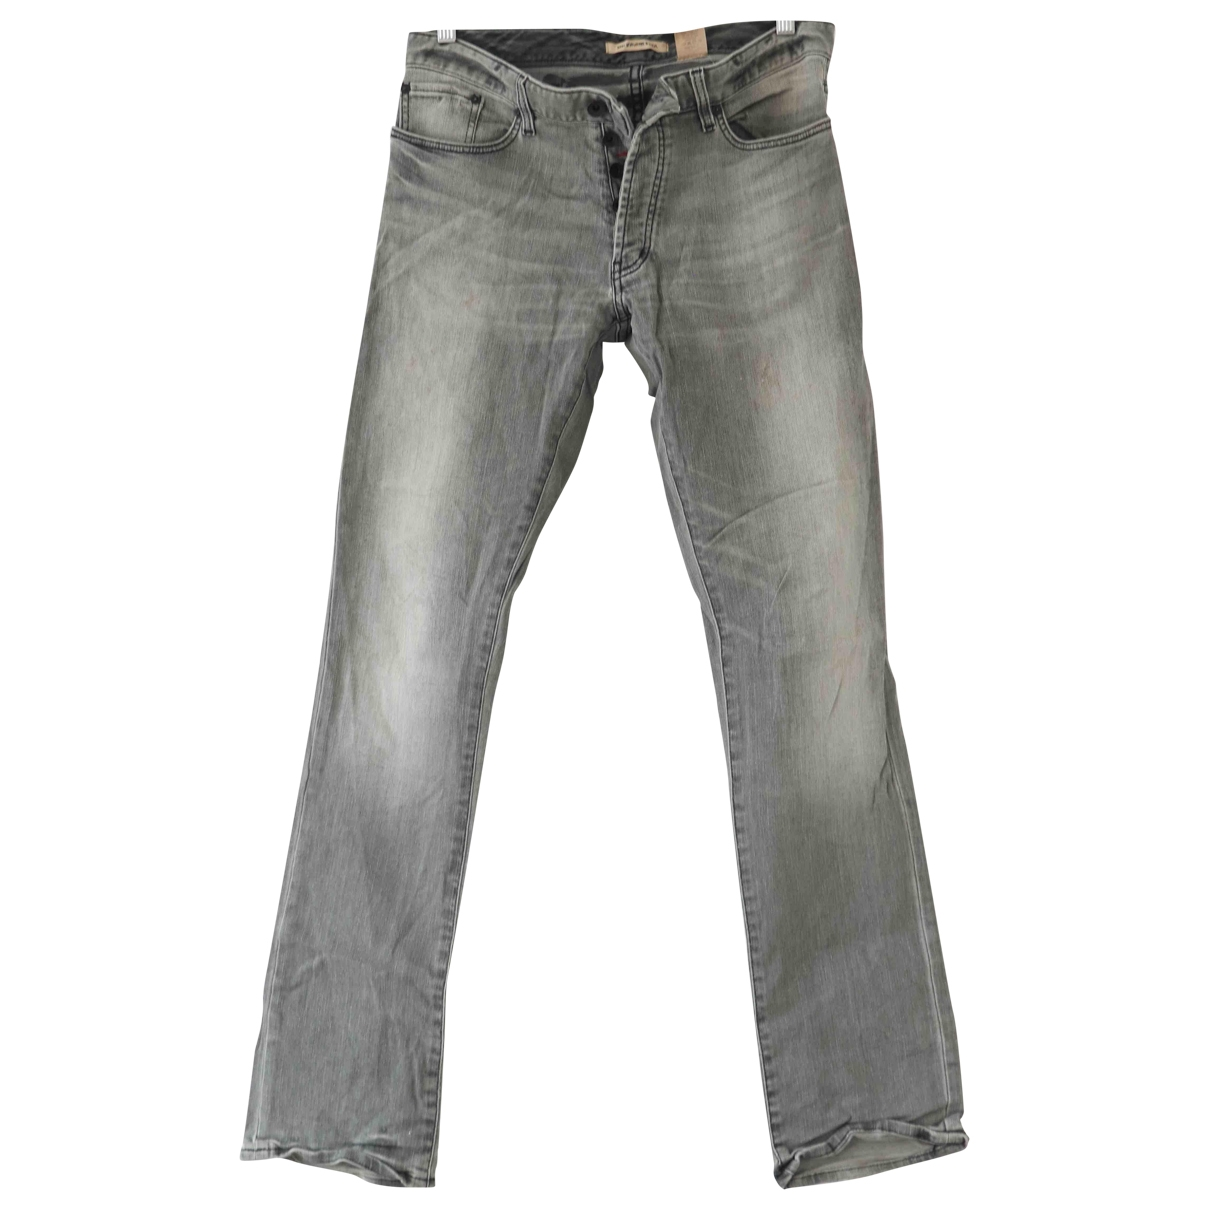 John Varvatos \N Grey Cotton - elasthane Jeans for Men 32 US